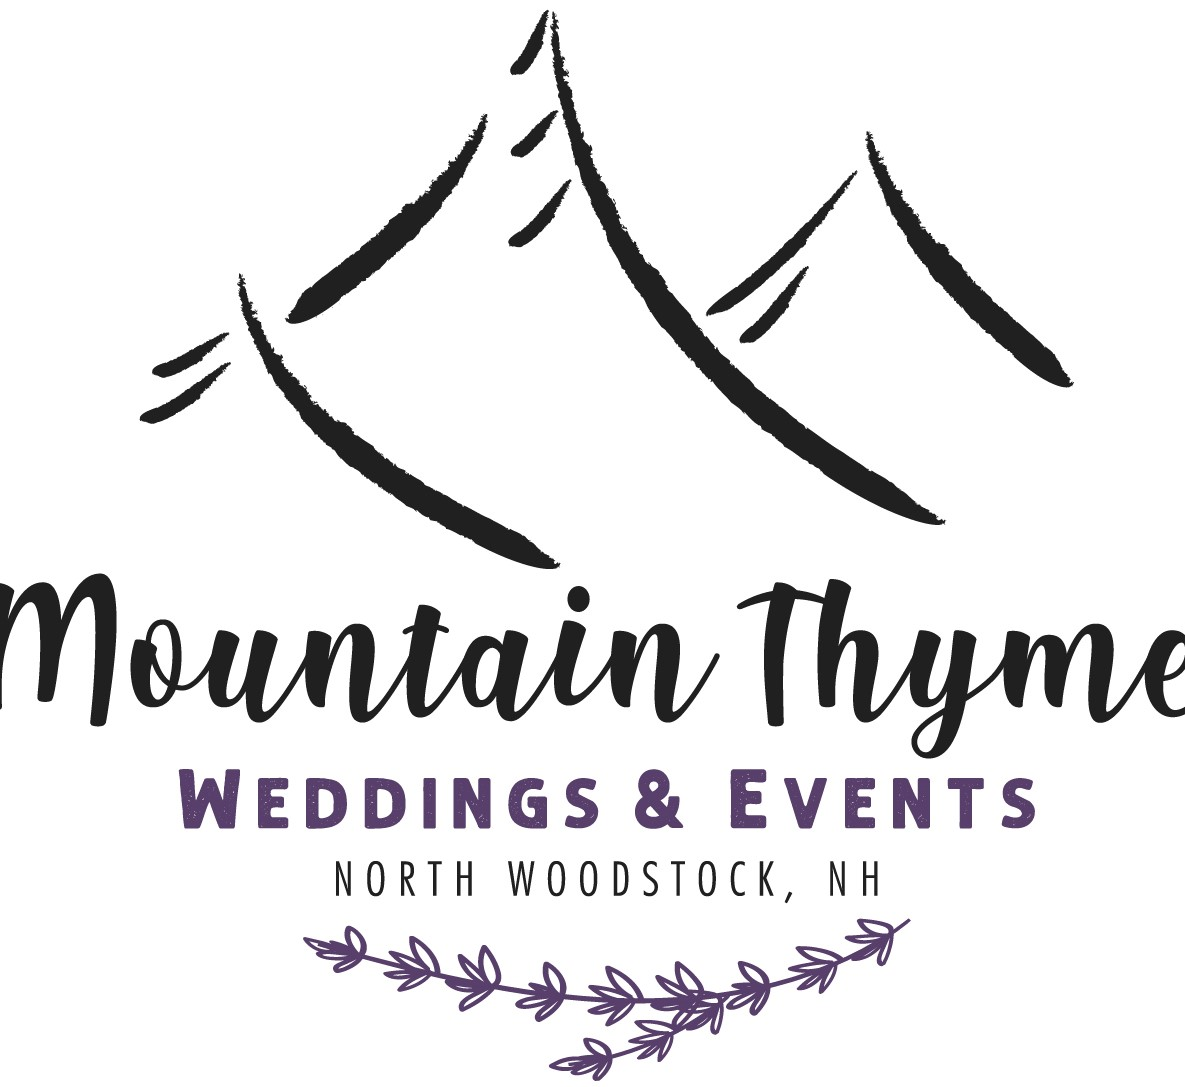 COMING SOON      Wildfire Catering is proud to announce our new      Mountain Thyme Wedding & Event Venue in the beautiful      White Mountains of New Hampshire      Taking bookings for 2020. Call today 781-325-1653